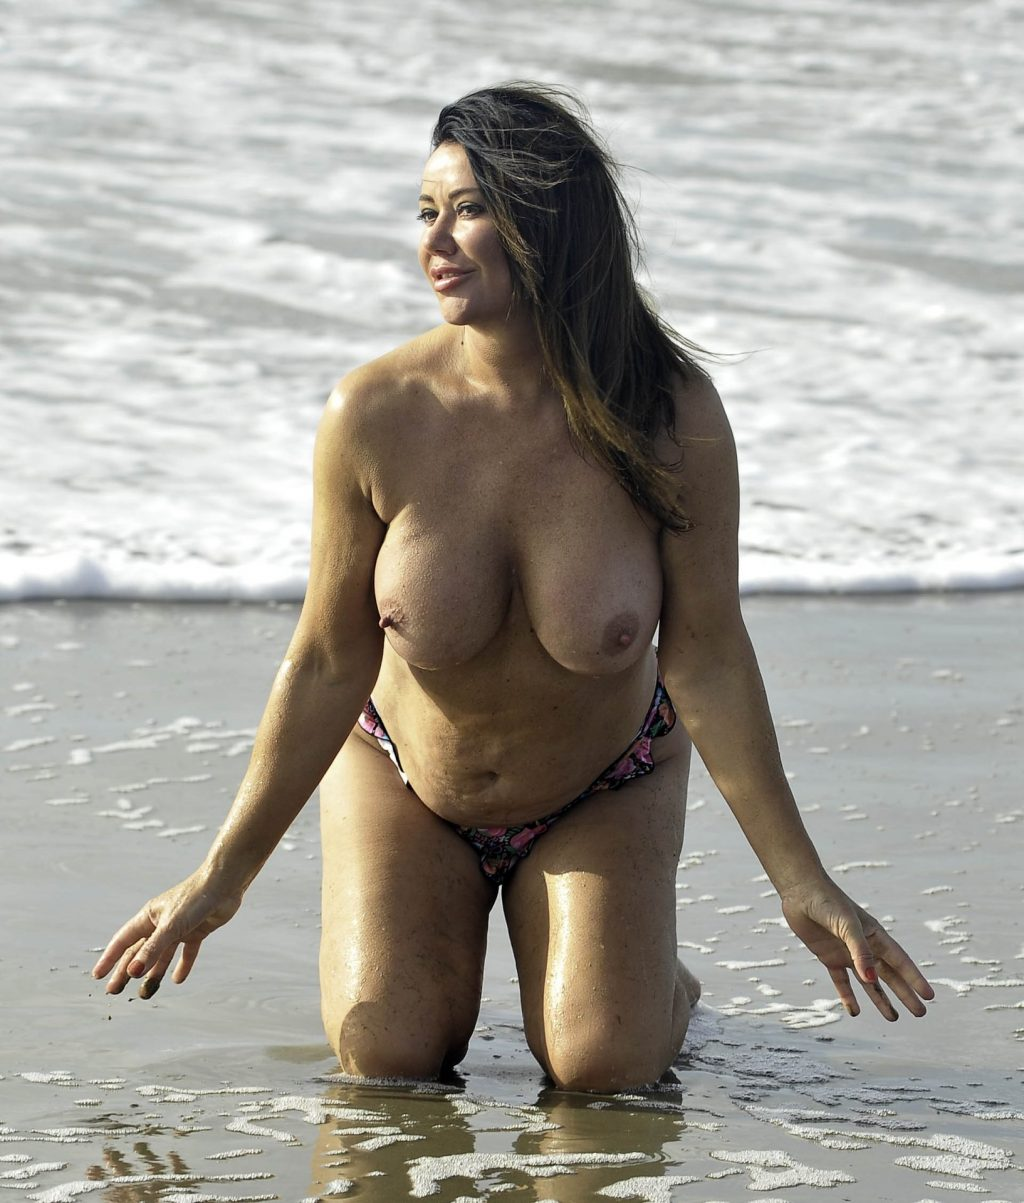 Lisa Appleton Topless (15 Photos)